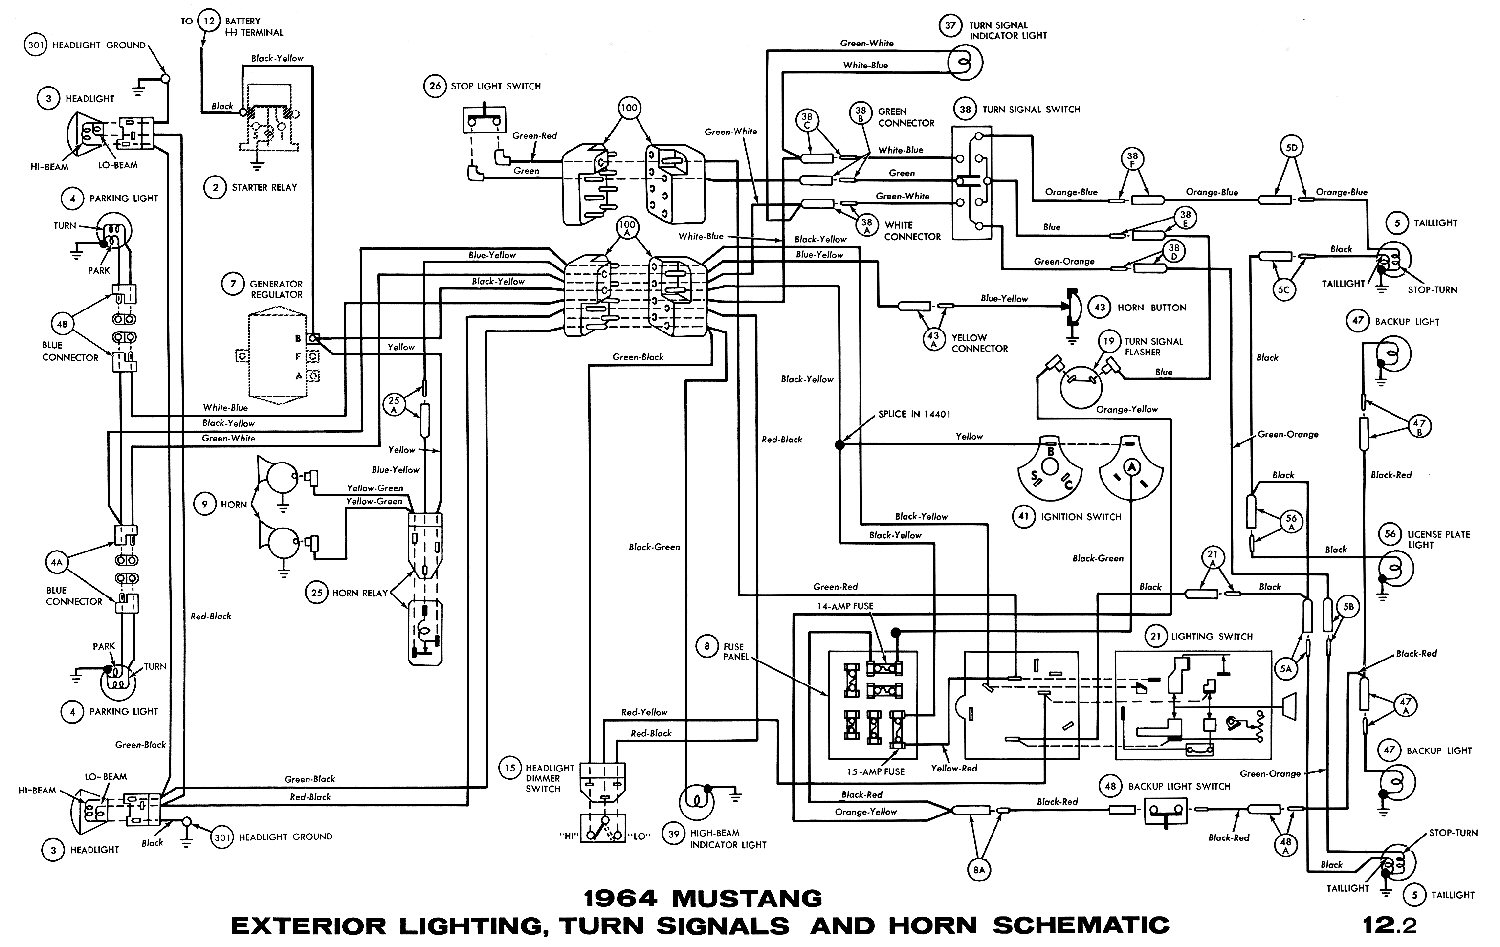 1964i 1964 mustang wiring diagrams average joe restoration Turn Signal Relay Wiring Diagram at mifinder.co